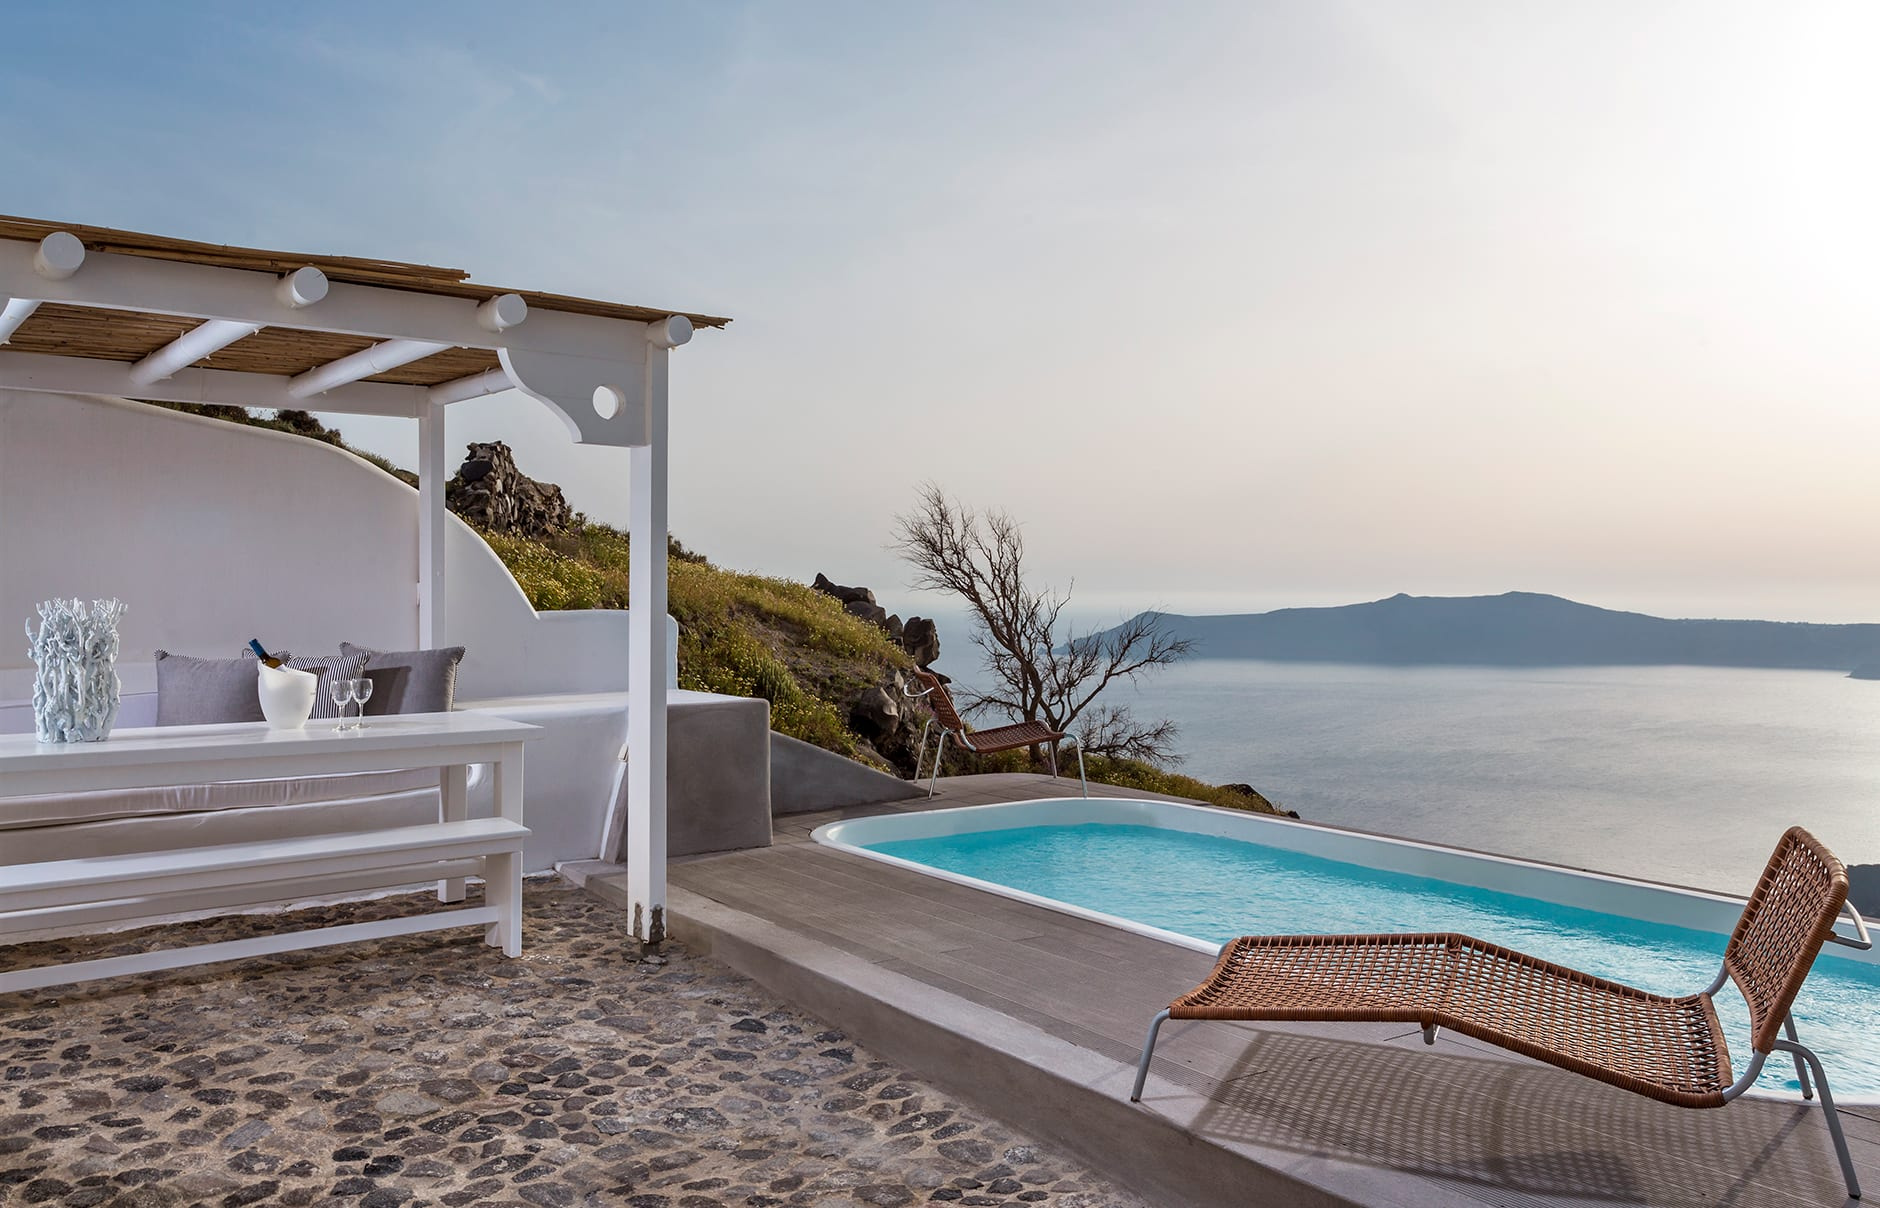 Chromata Santorini, Greece. Hotel Review by TravelPlusStyle. Photo © Chromata Santorini